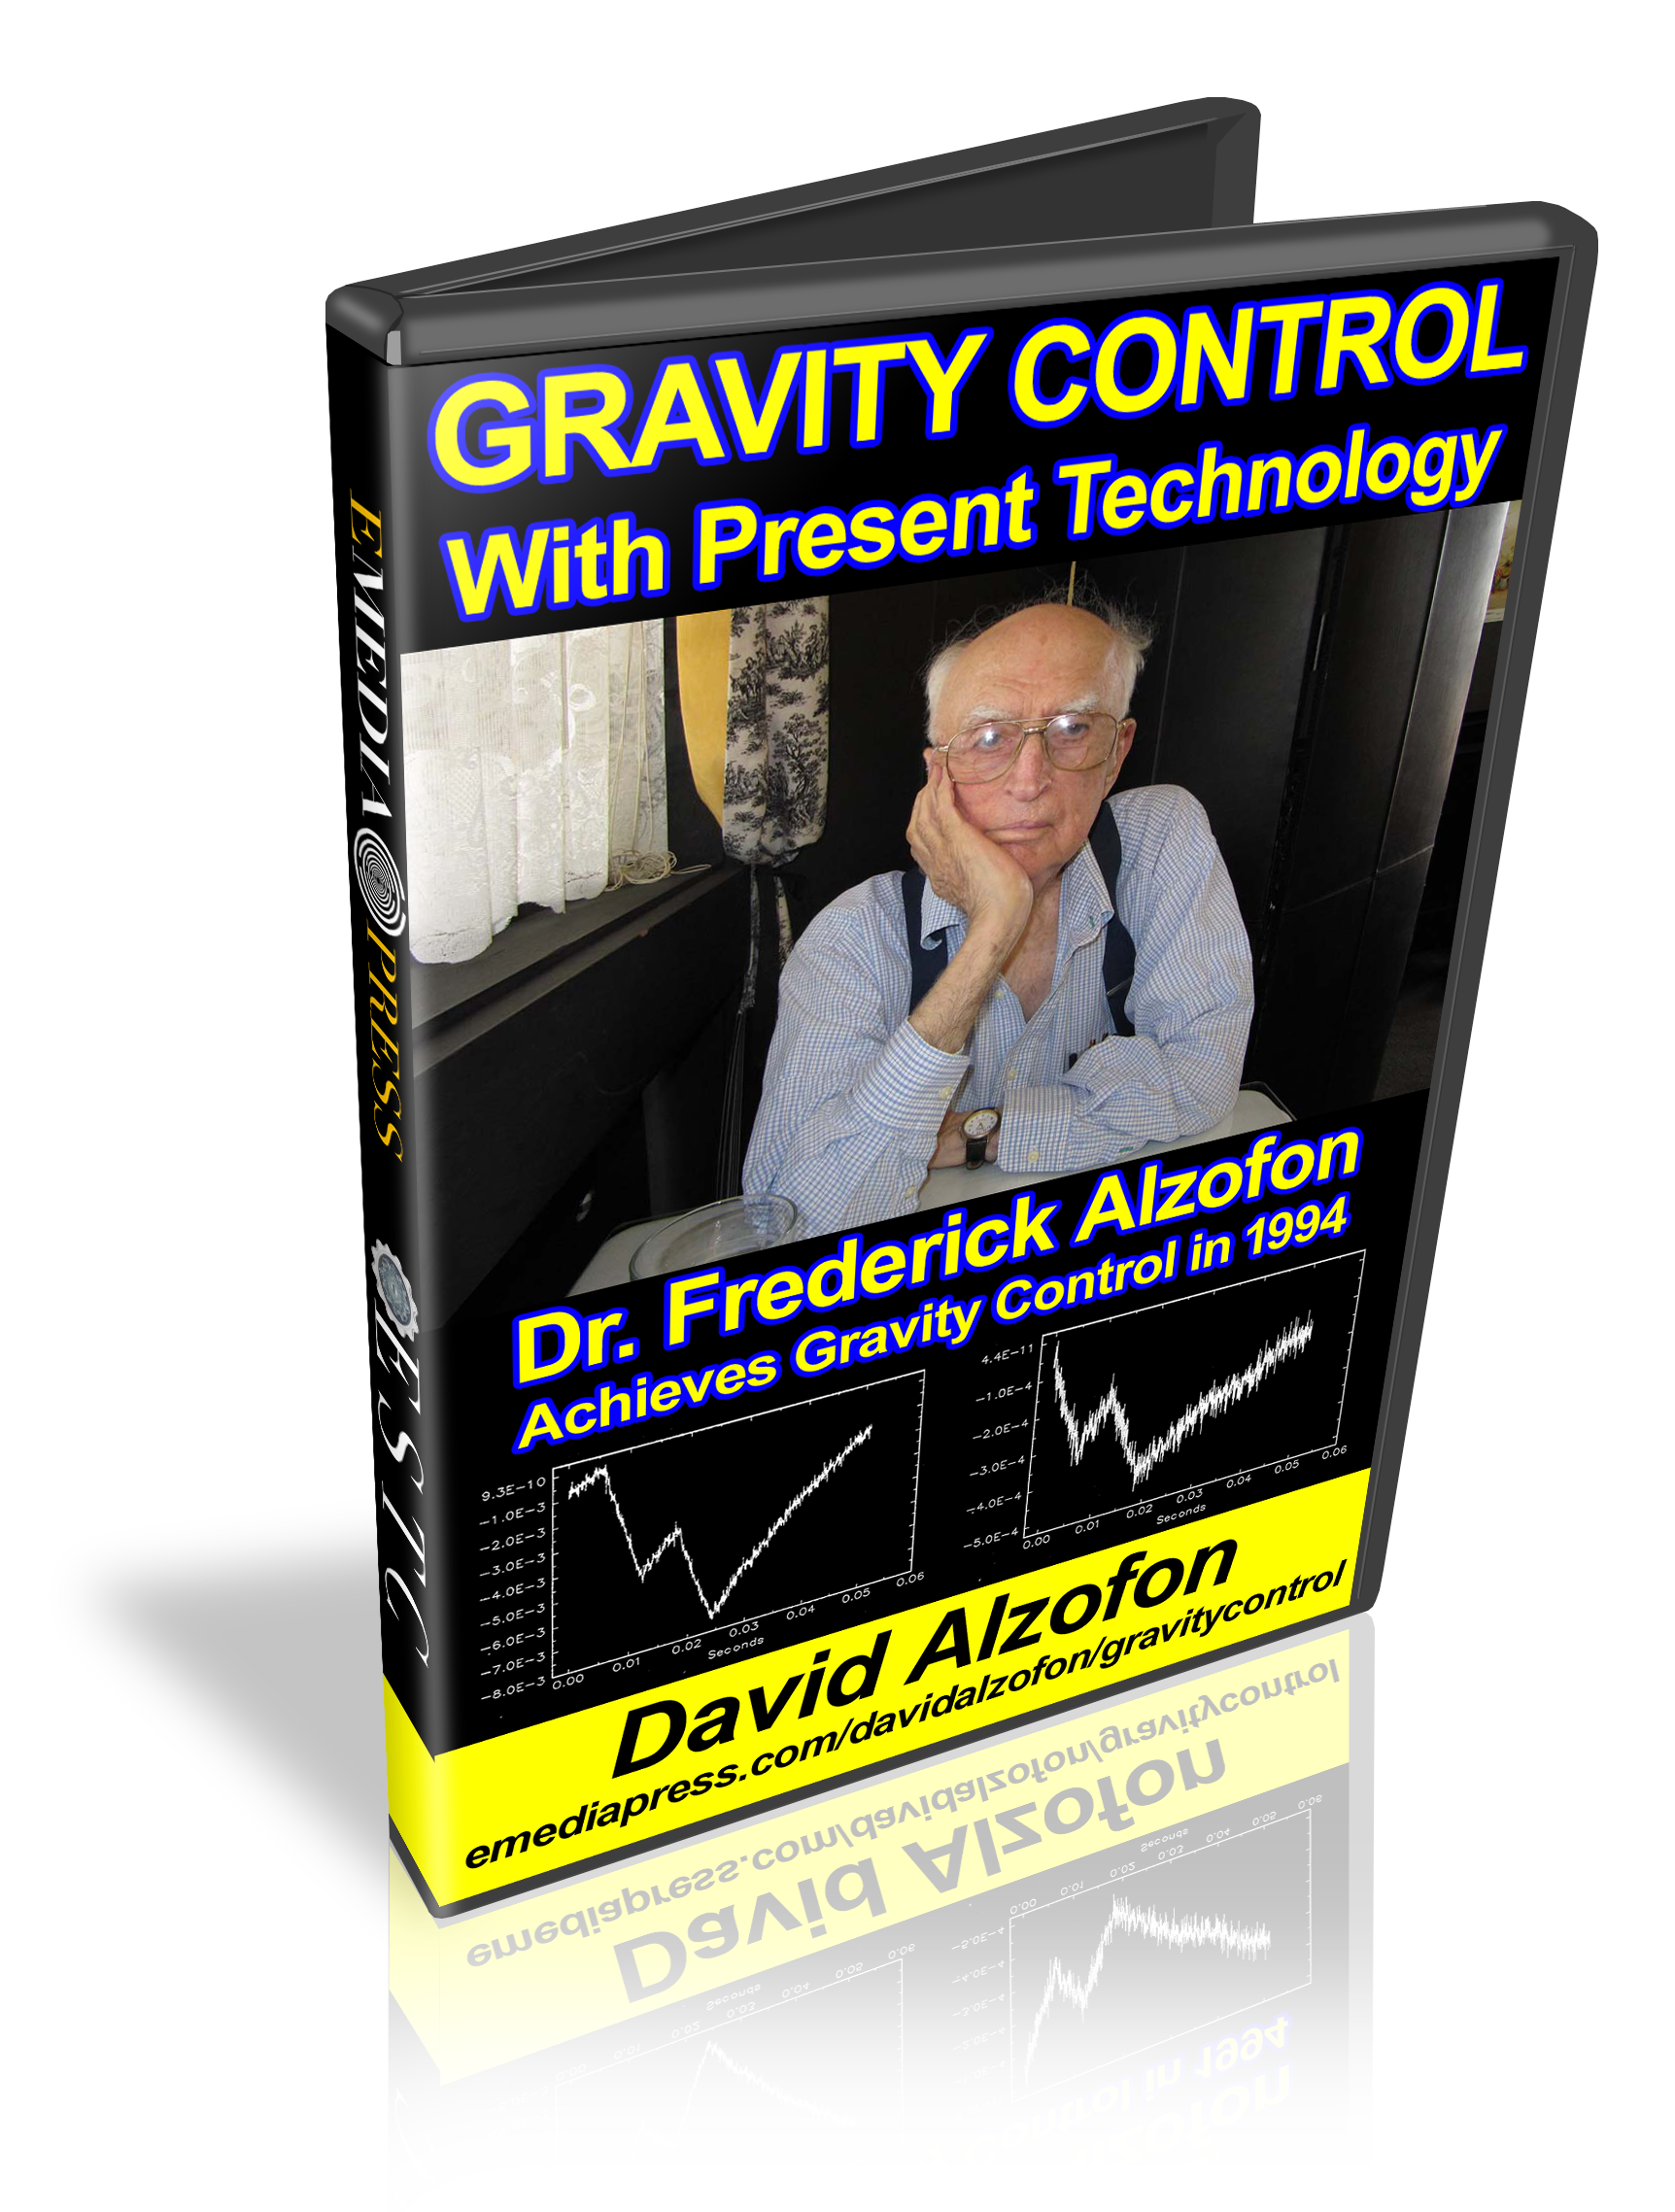 Gravity Control with Present Technology by David Alzofon